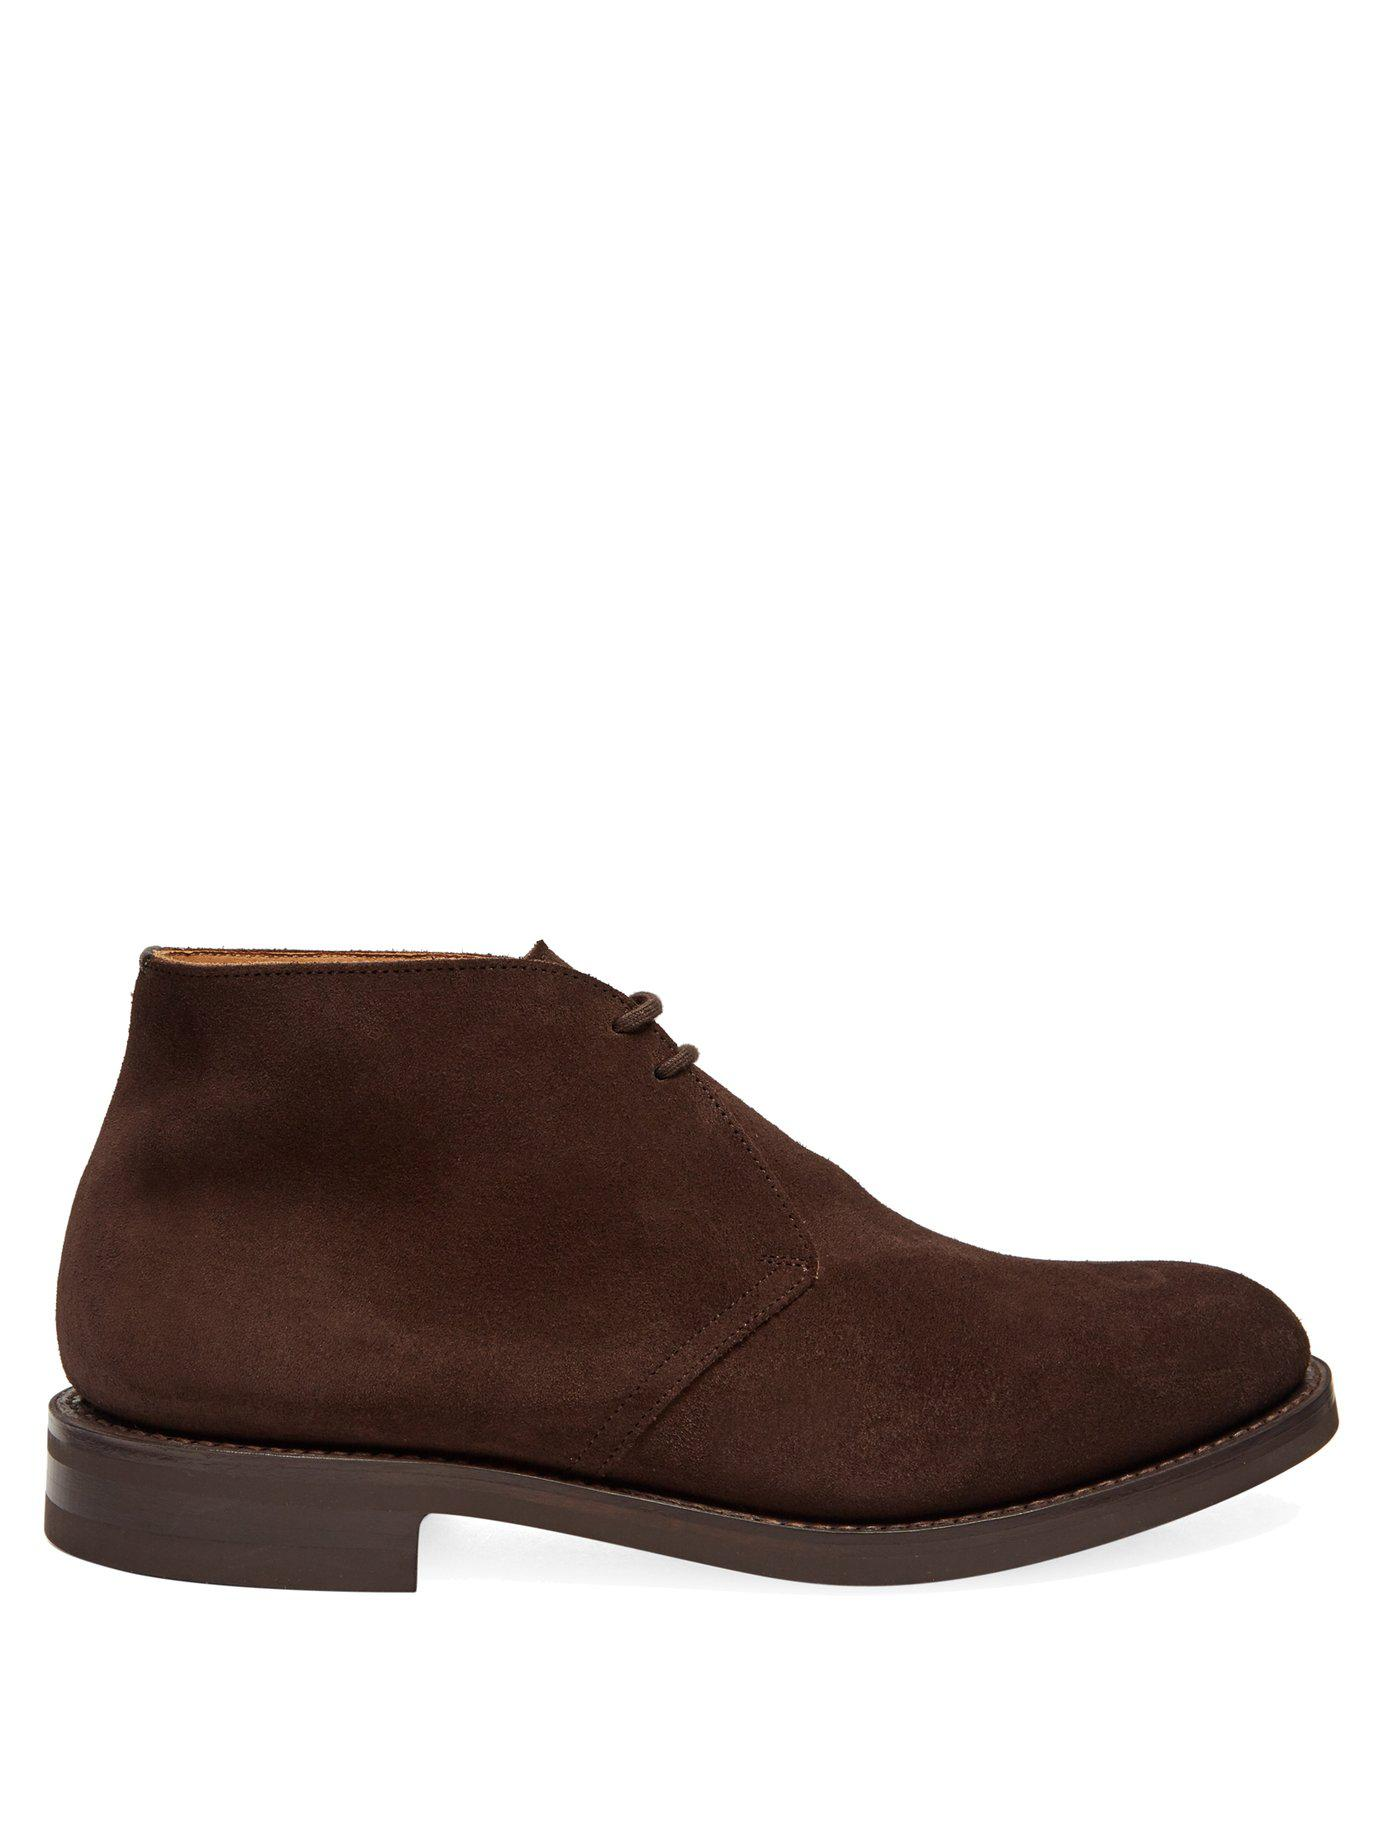 Brown 3 in Ryder Men Chukka for Boots Church'S Suede Lyst pZHCwnSq0x